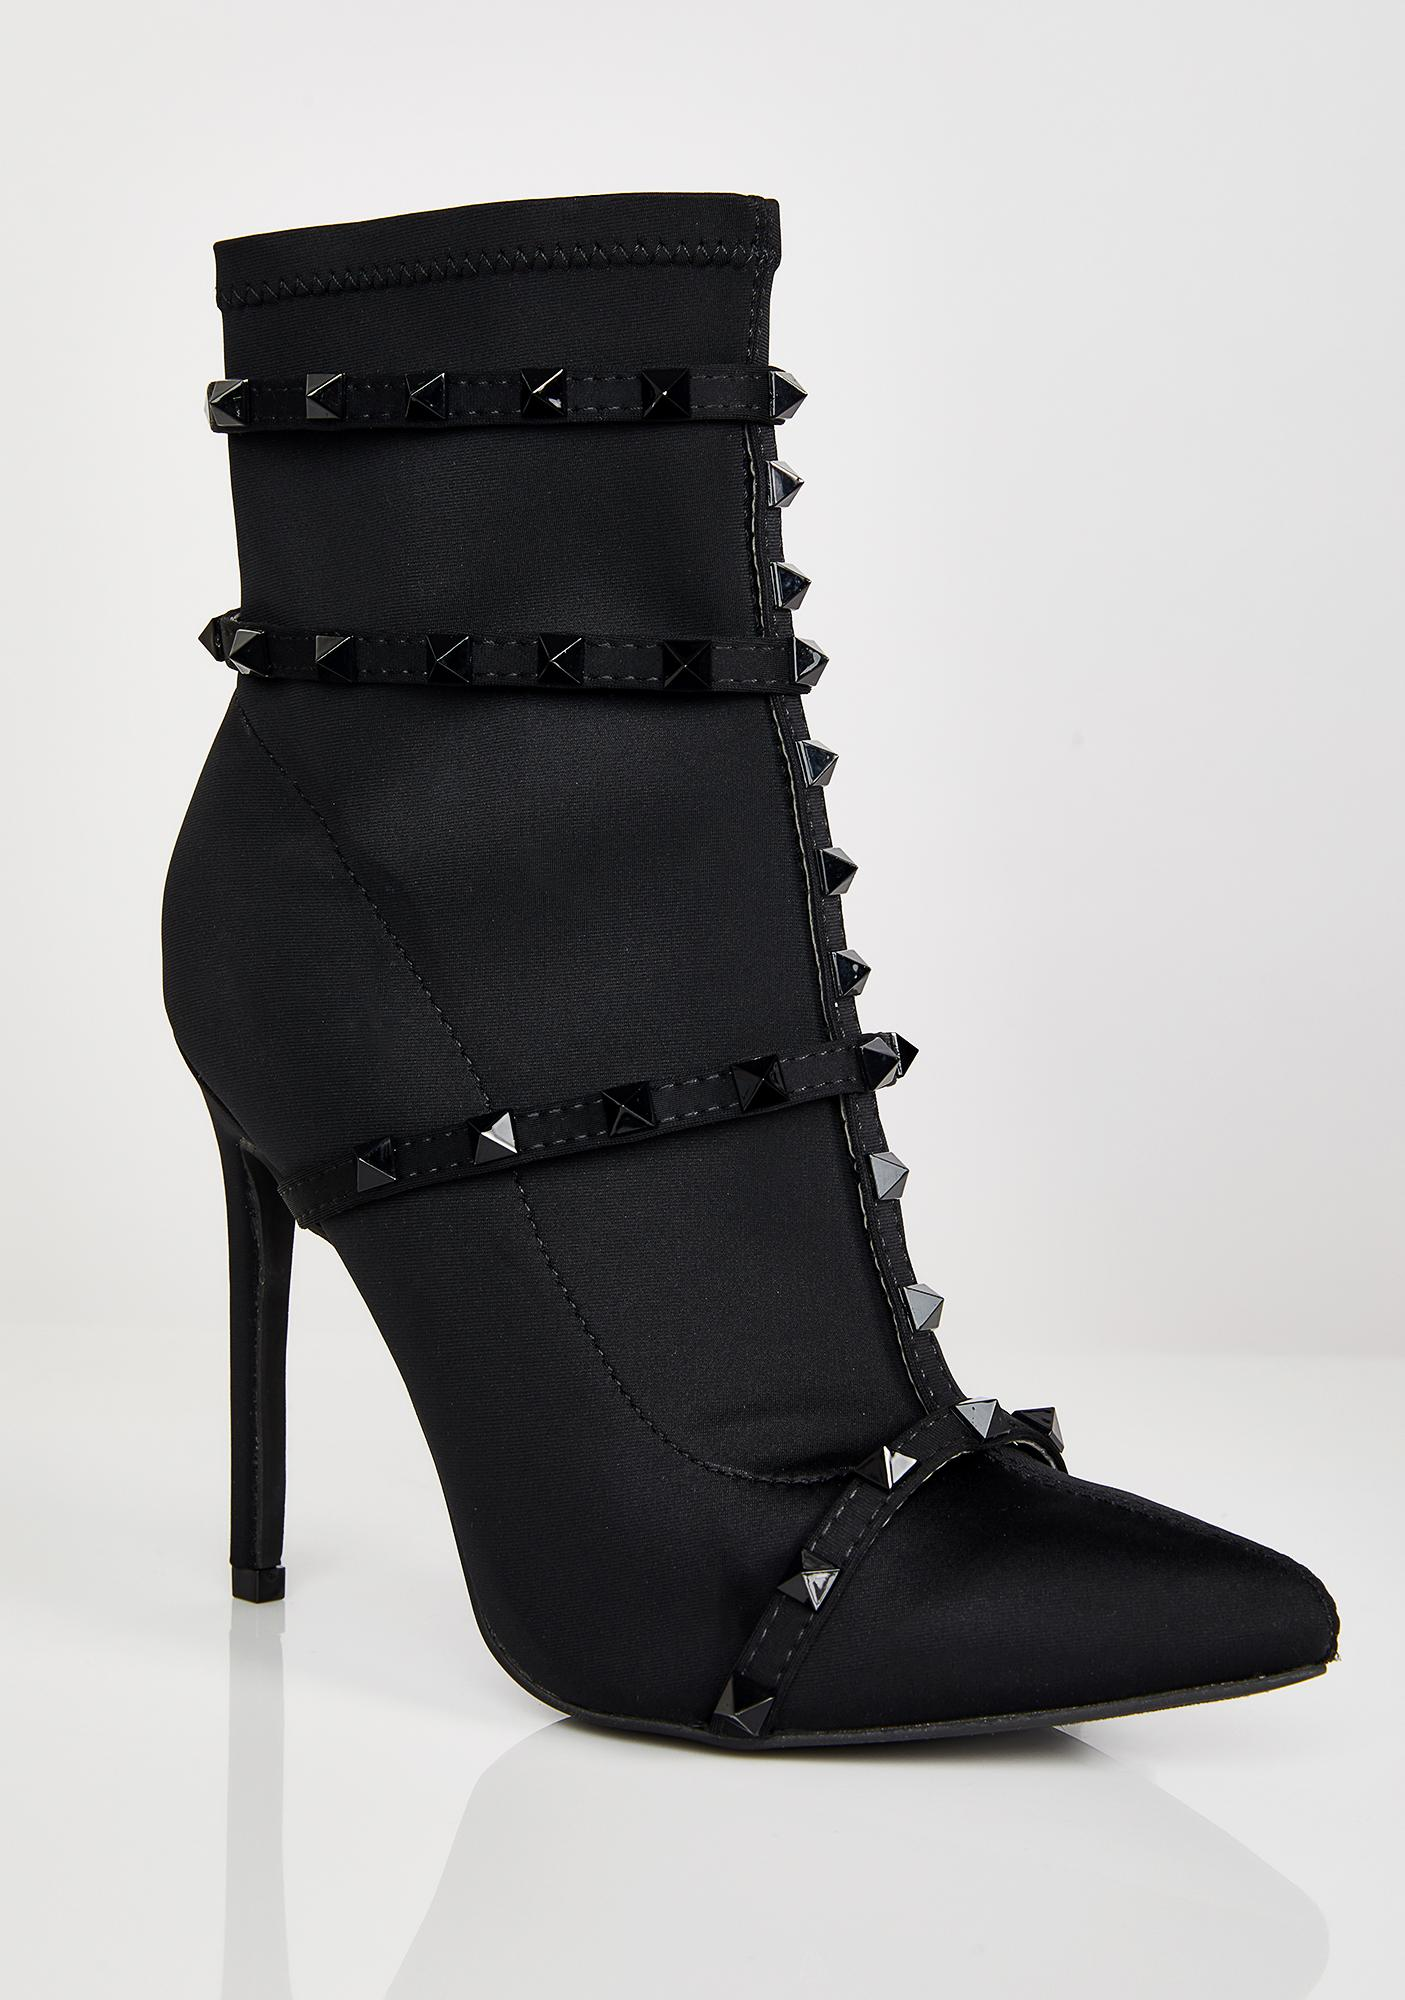 Onyx Neva Hesitate Studded Booties